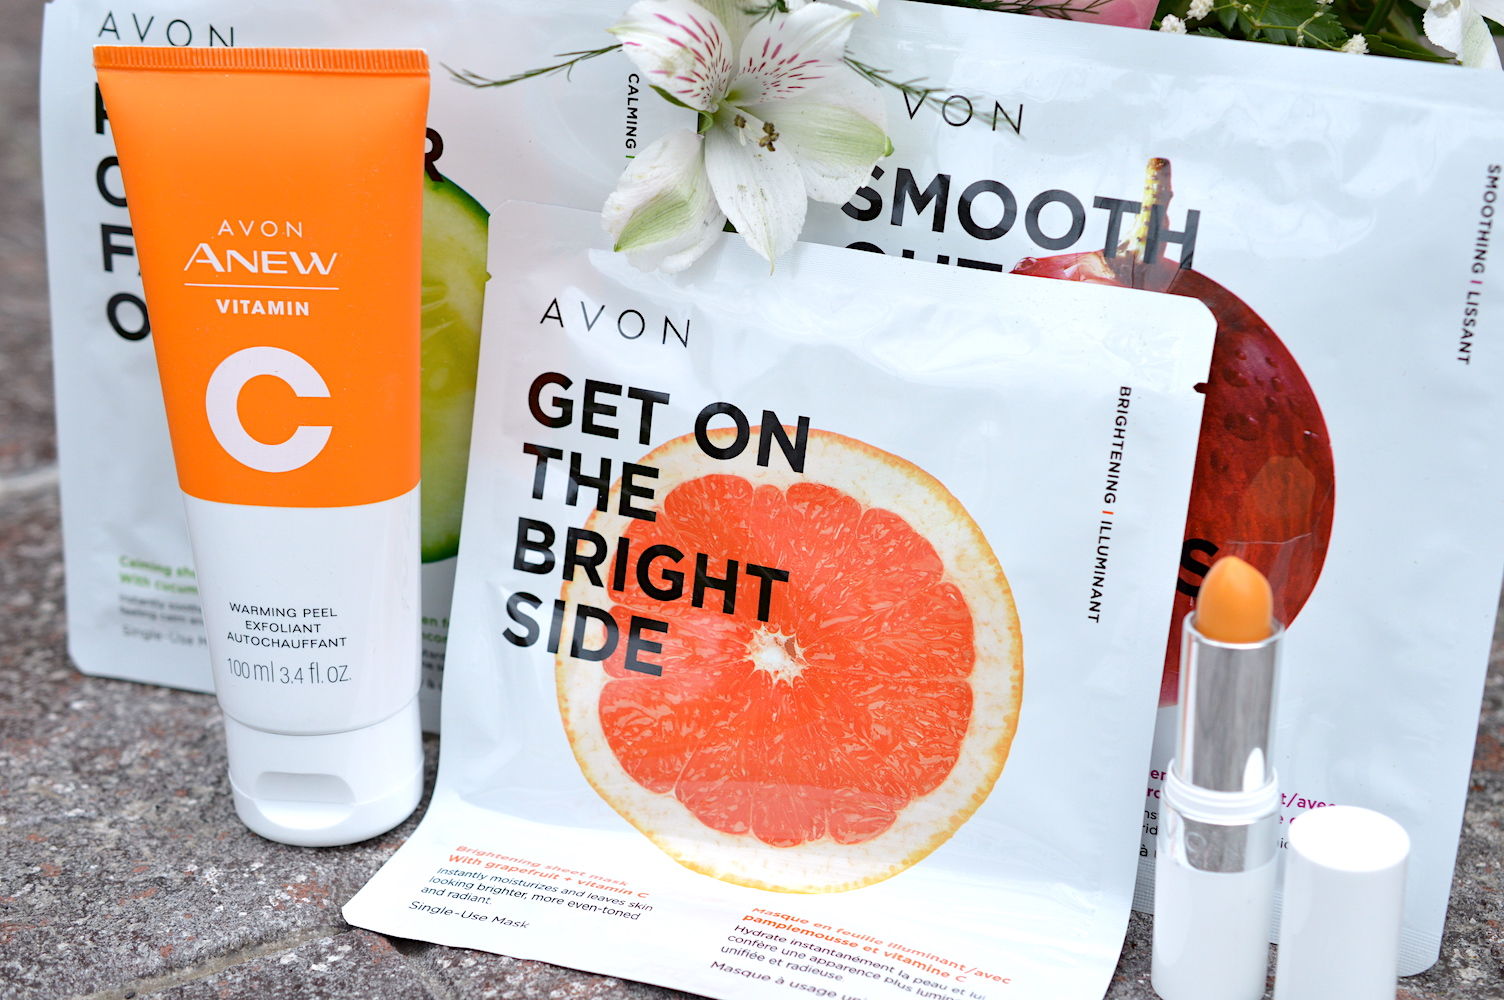 AVON Anew Vitamin C Review